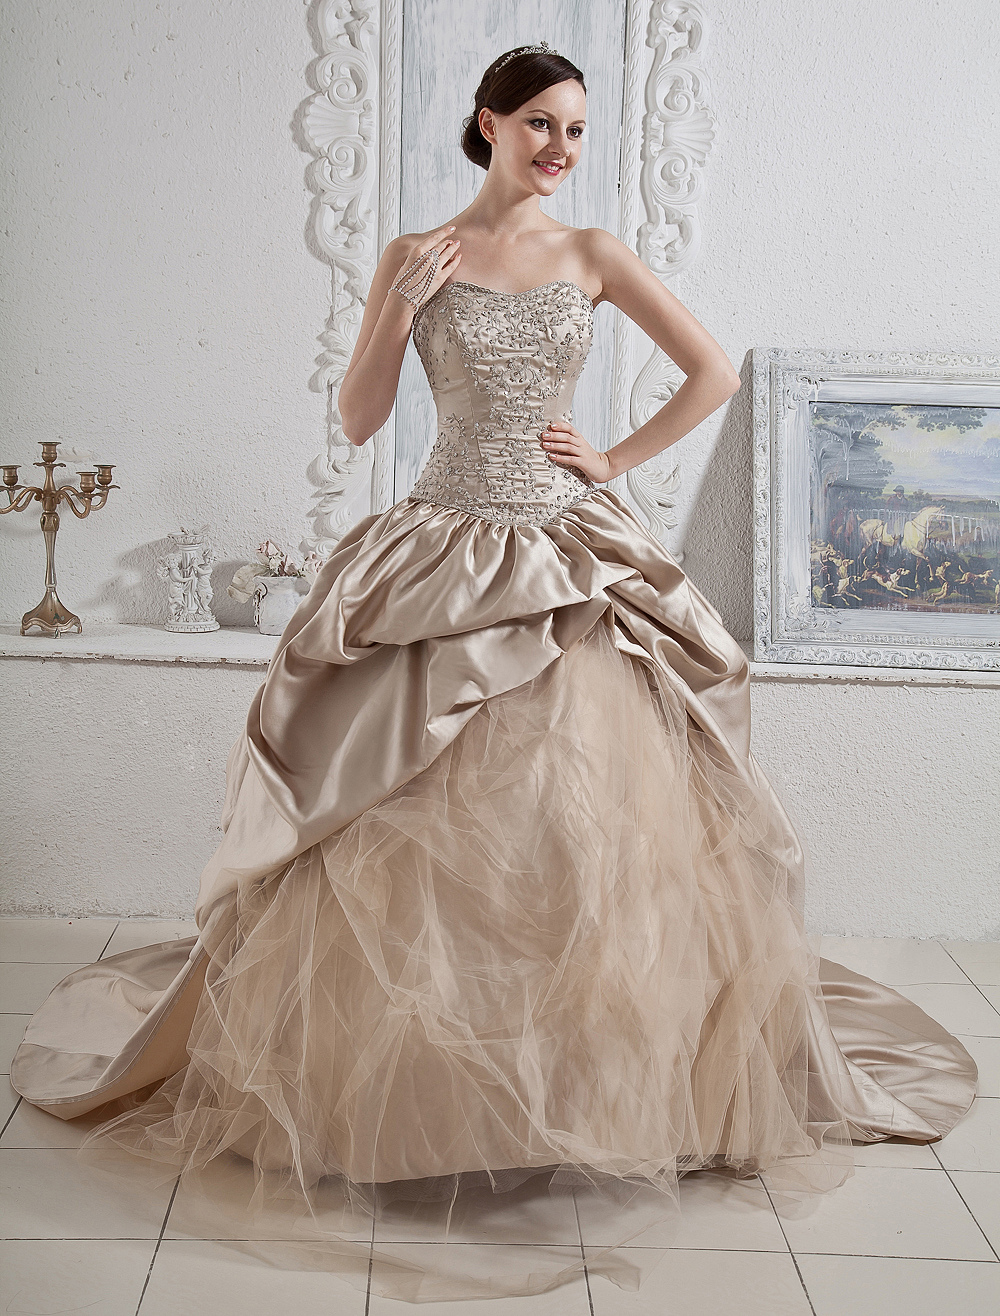 Wedding dresses champagne strapless ball gown bridal dress for Champagne ball gown wedding dresses